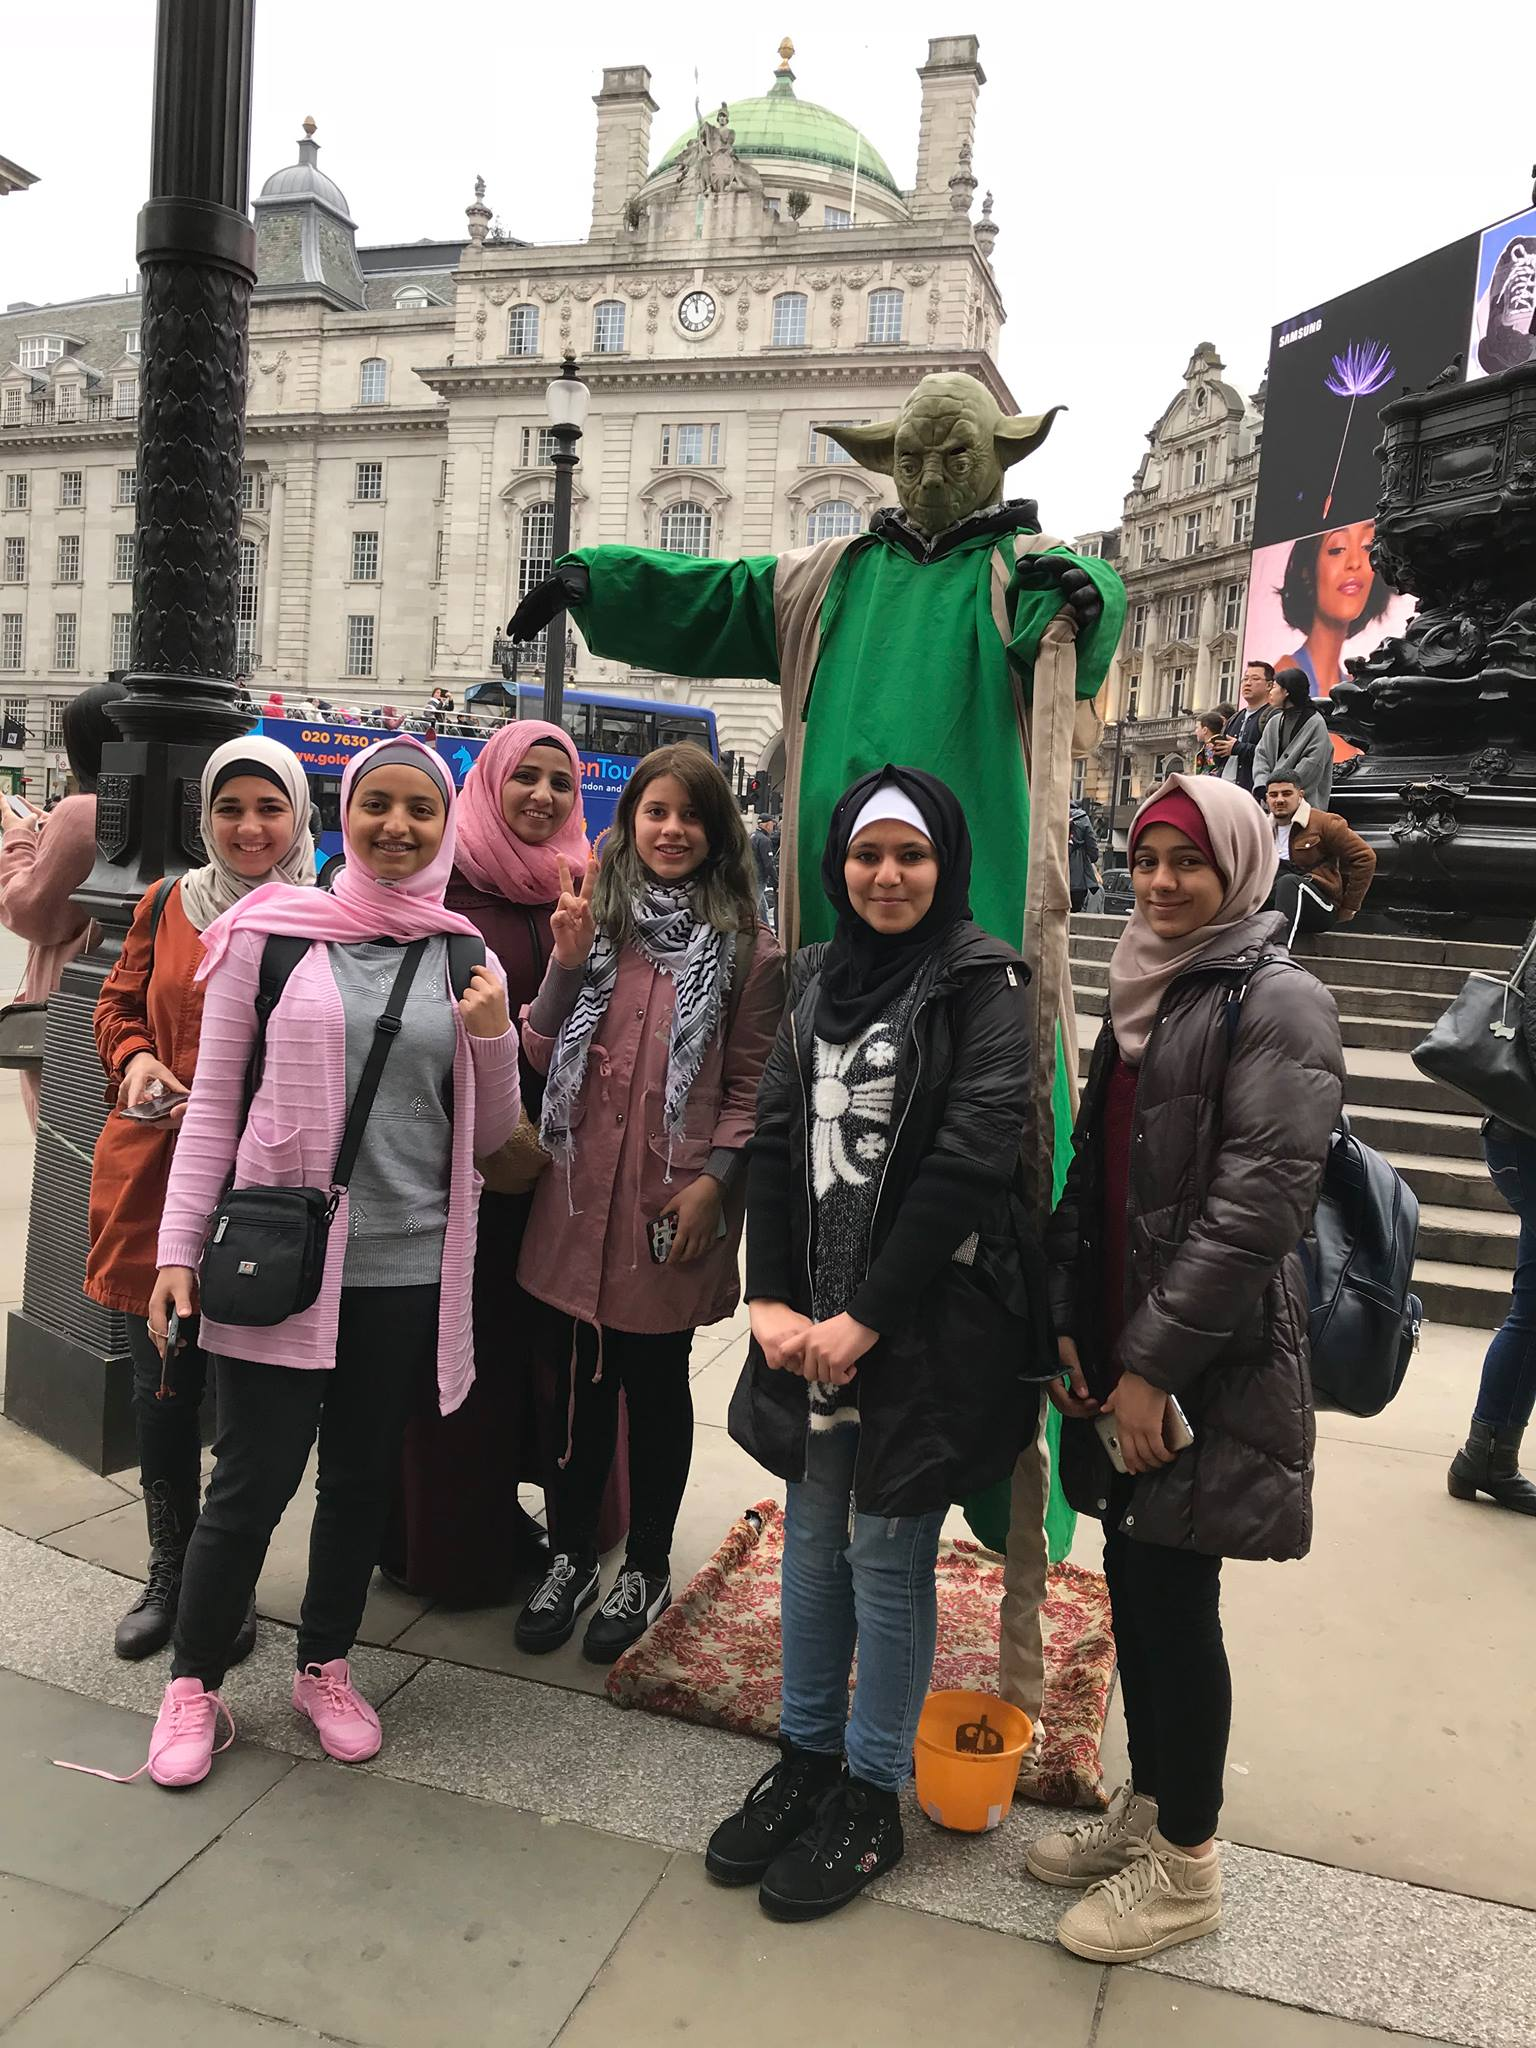 Members of the all-female Khan Younis troupe pose for a photo during their trip to Britain in April. (Hands Up Project)